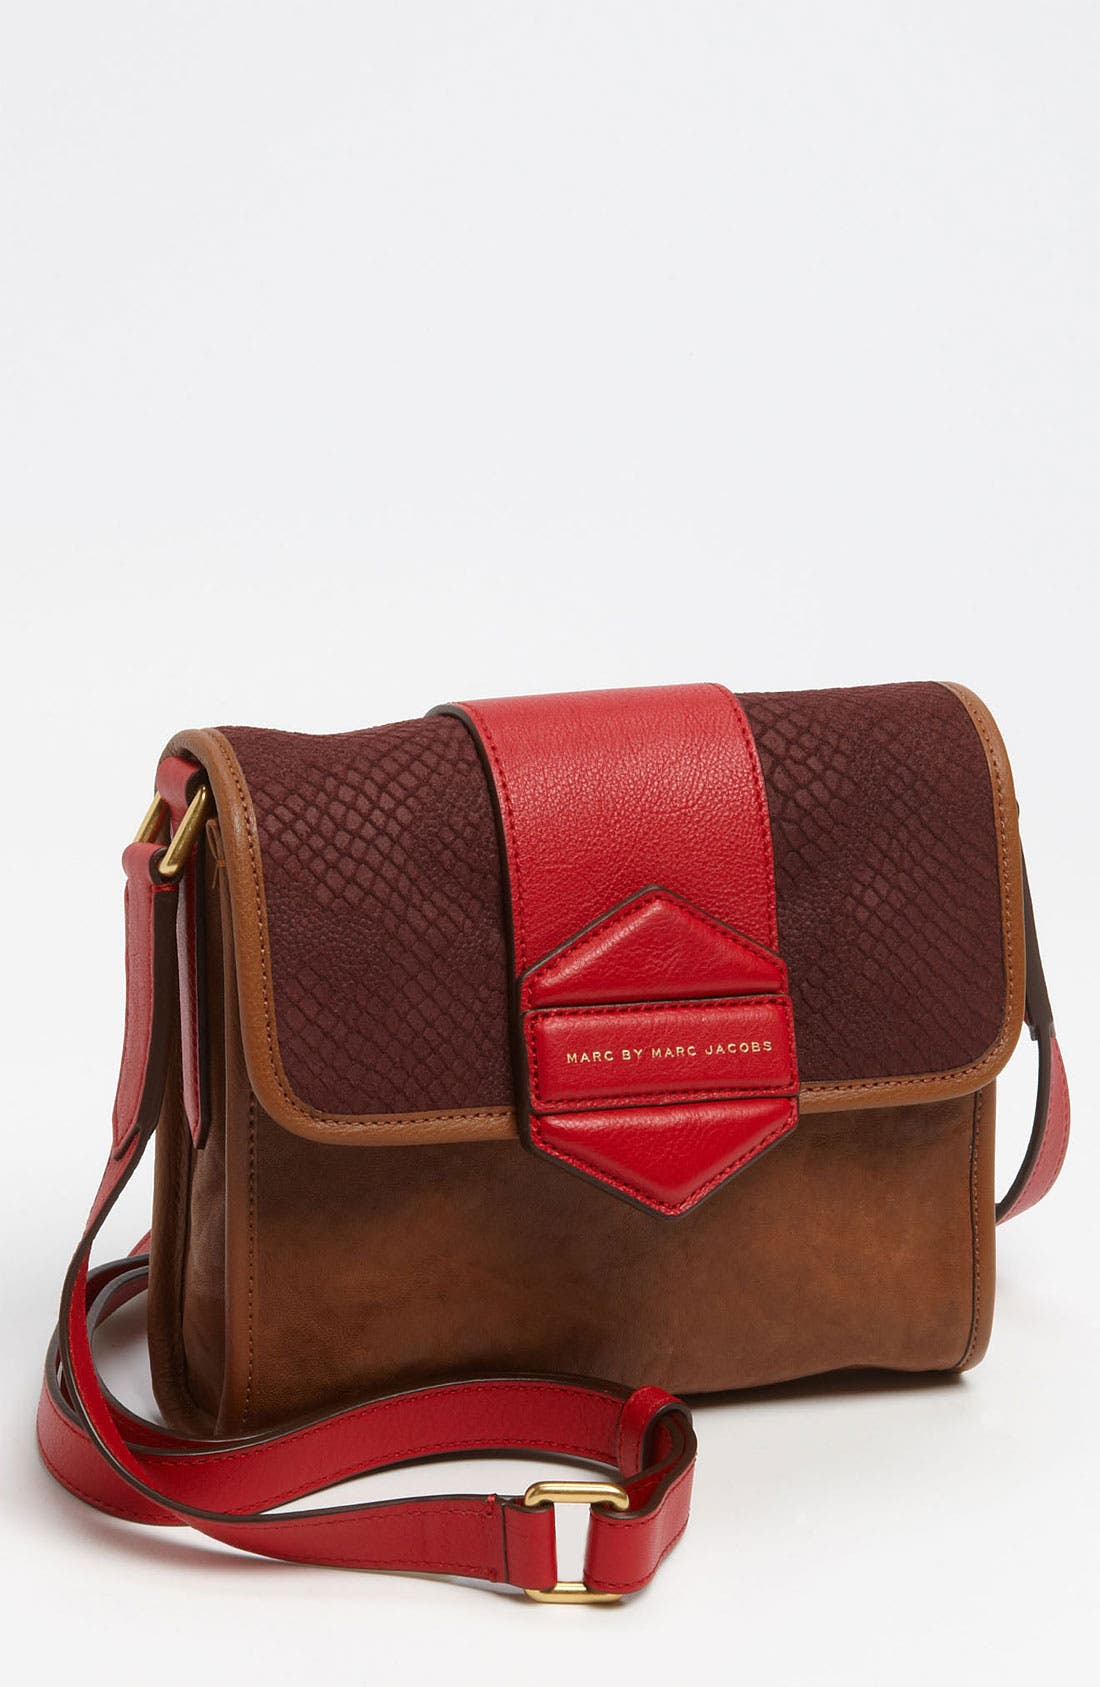 Alternate Image 1 Selected - MARC BY MARC JACOBS 'Flipping Out' Crossbody Bag